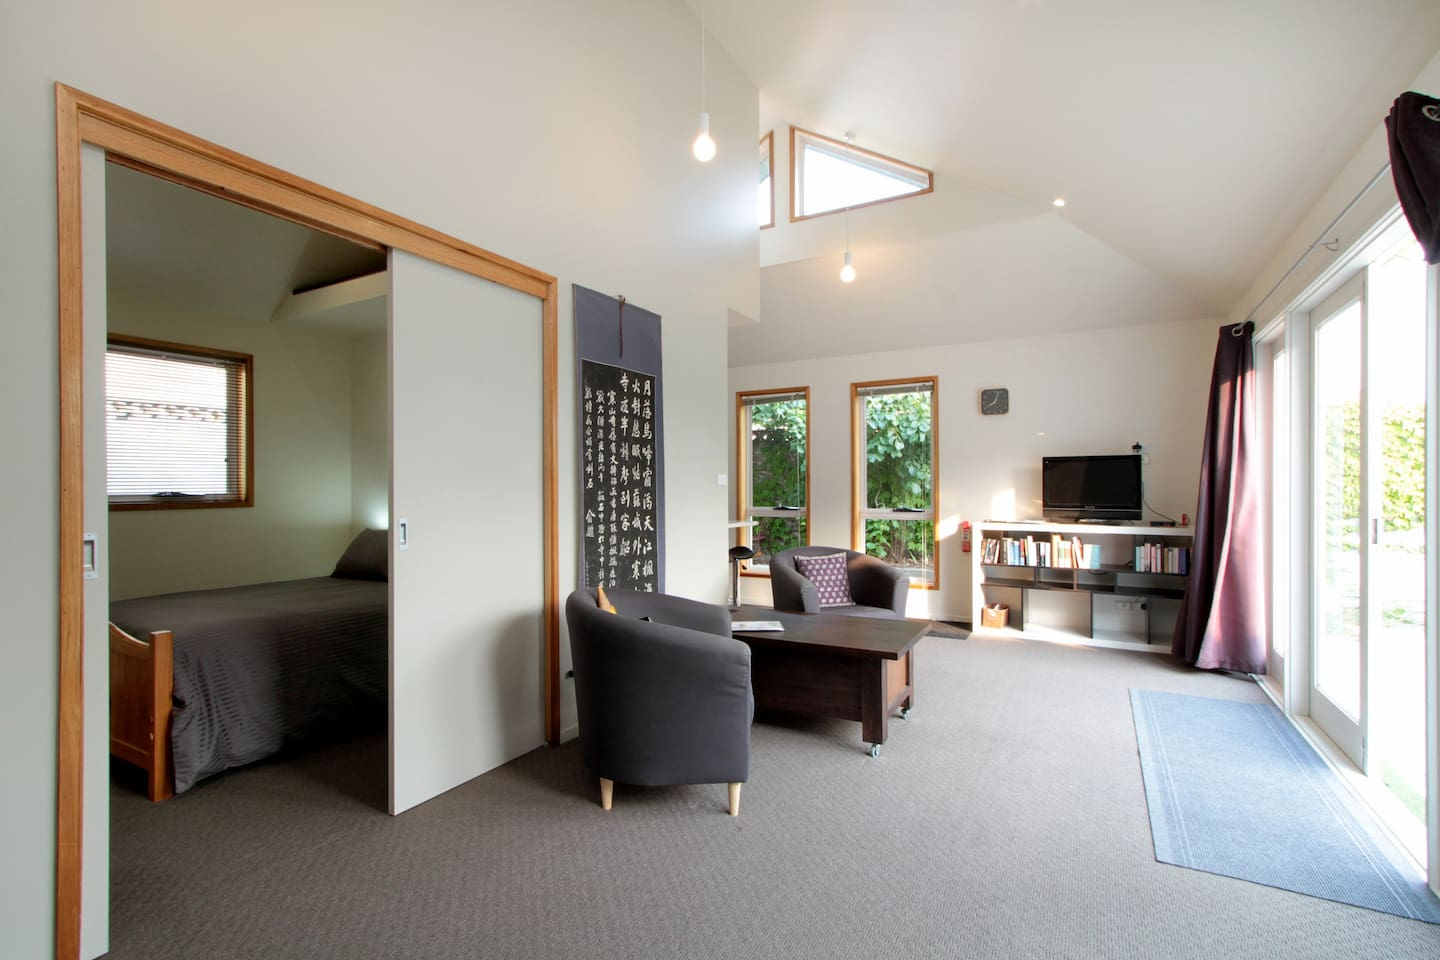 Spacious, clean,  light and airy